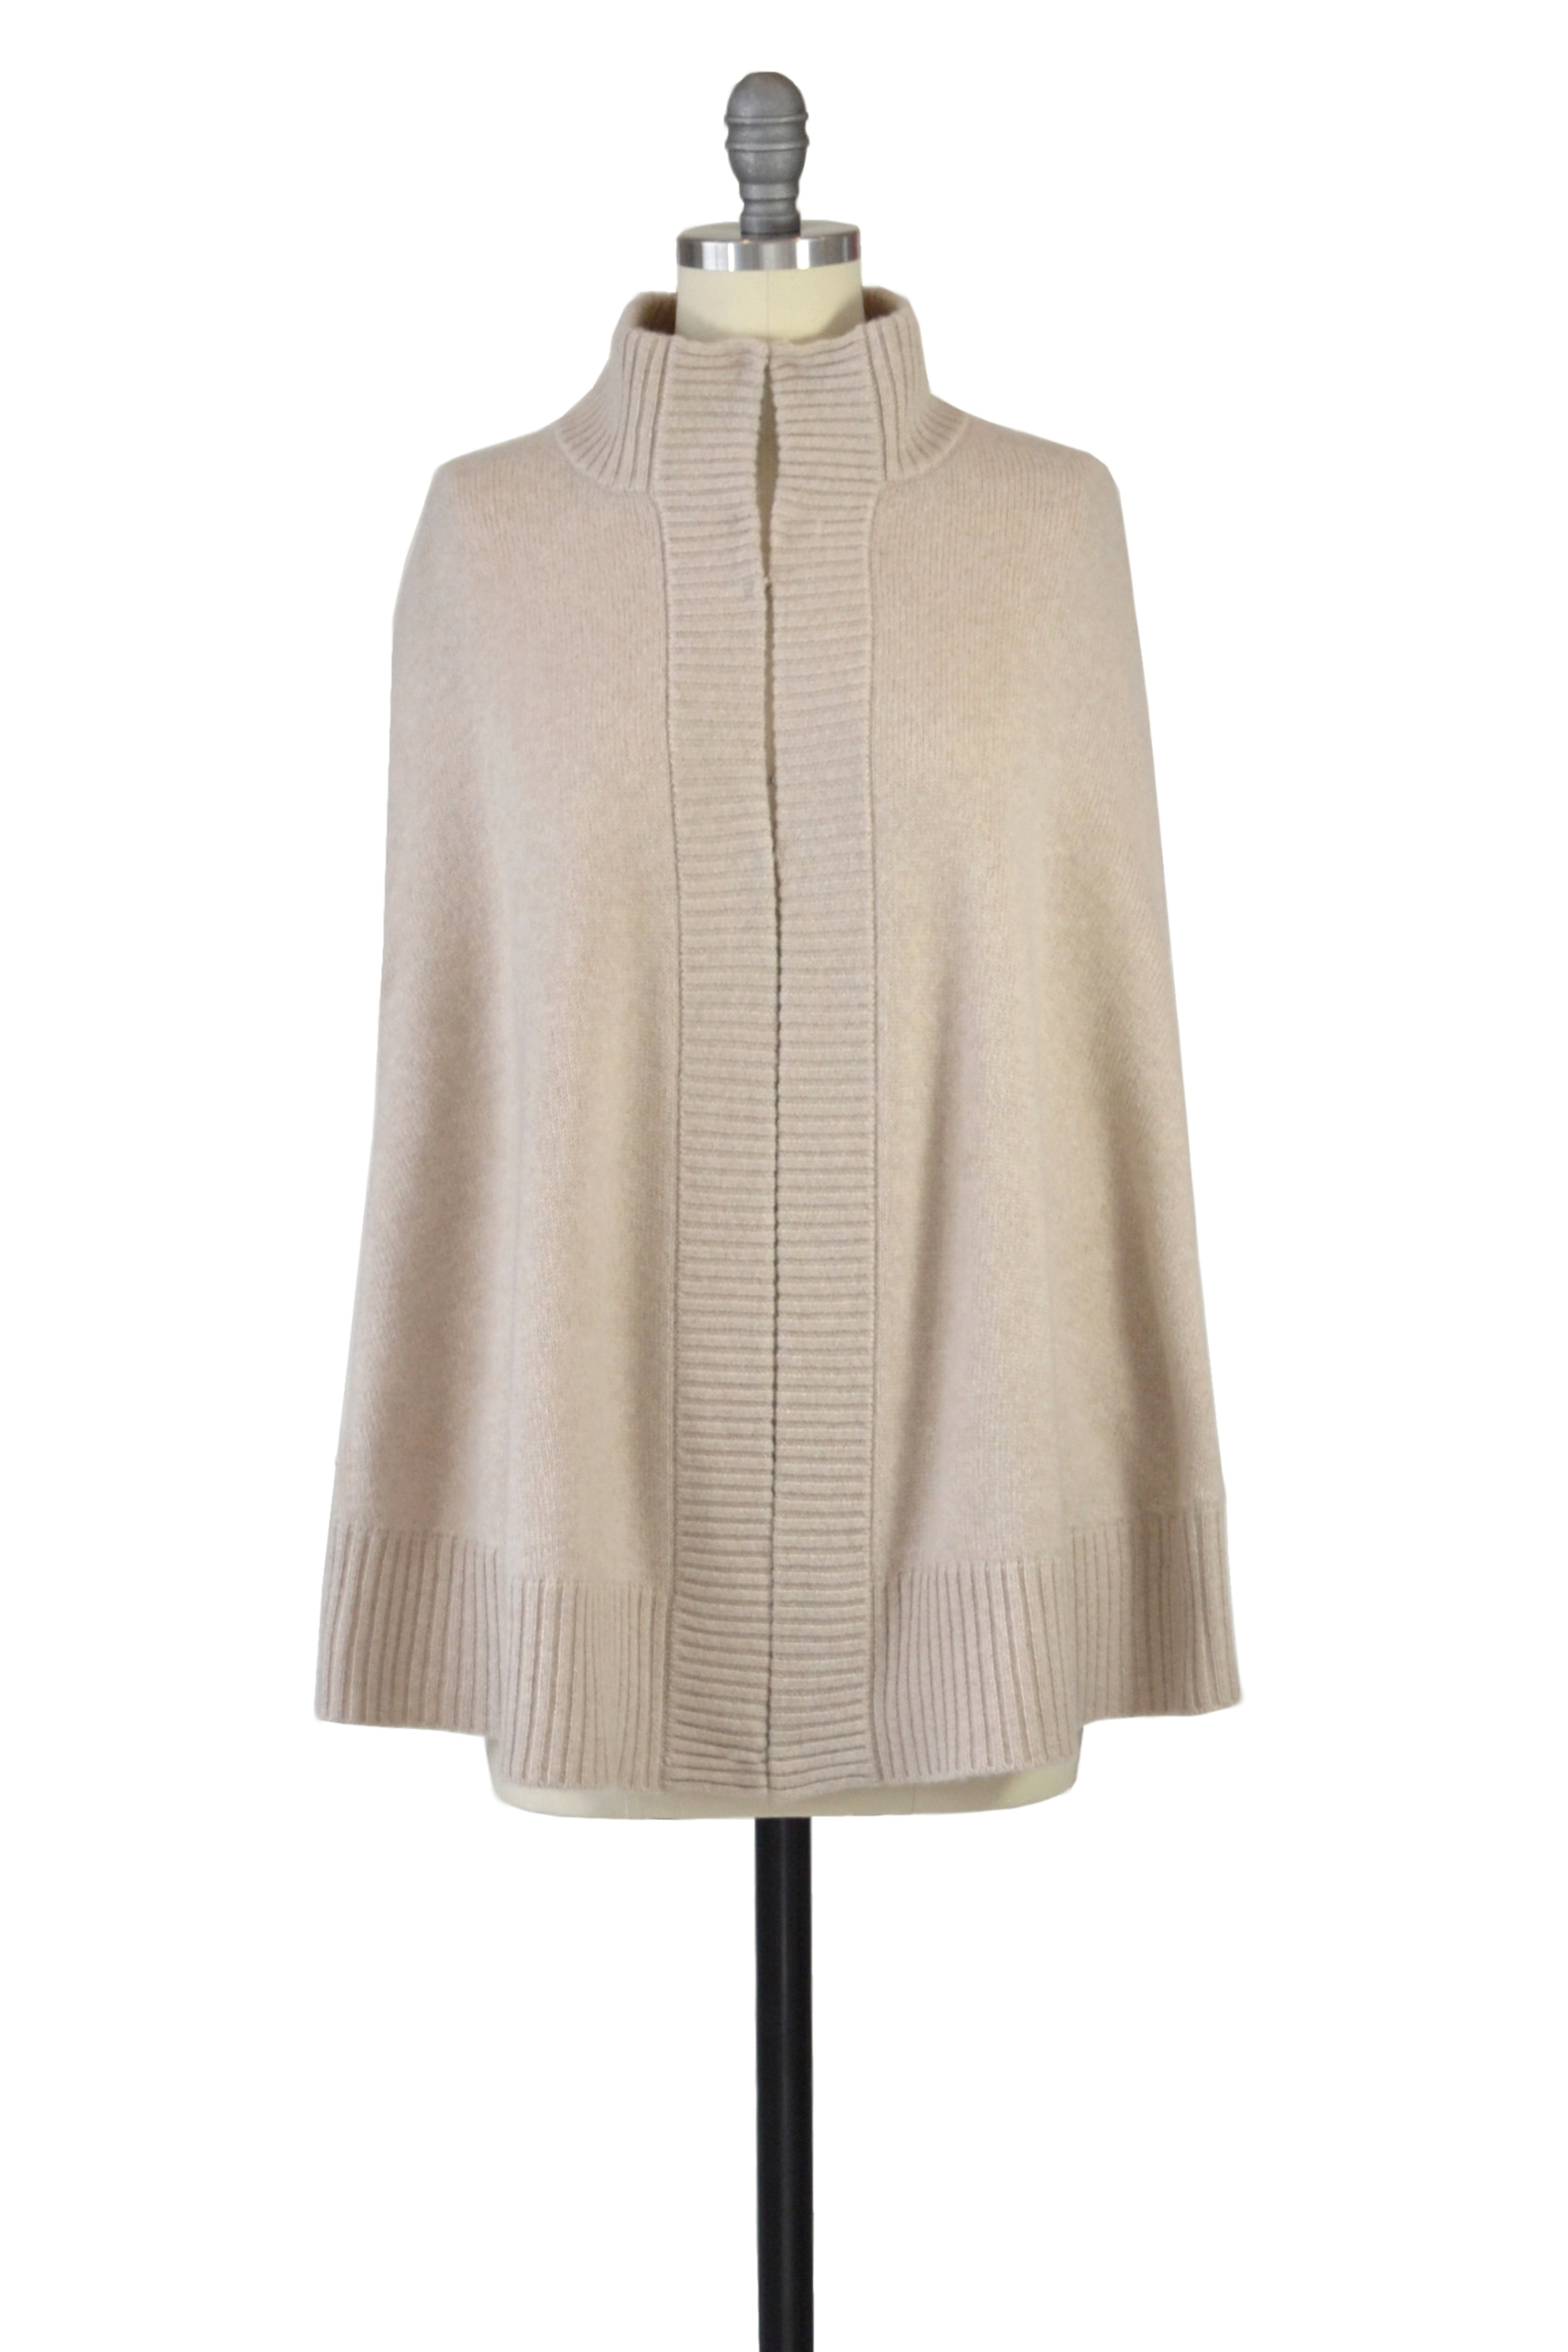 Cashmere Swing Poncho with Leather Trim in Oatmeal